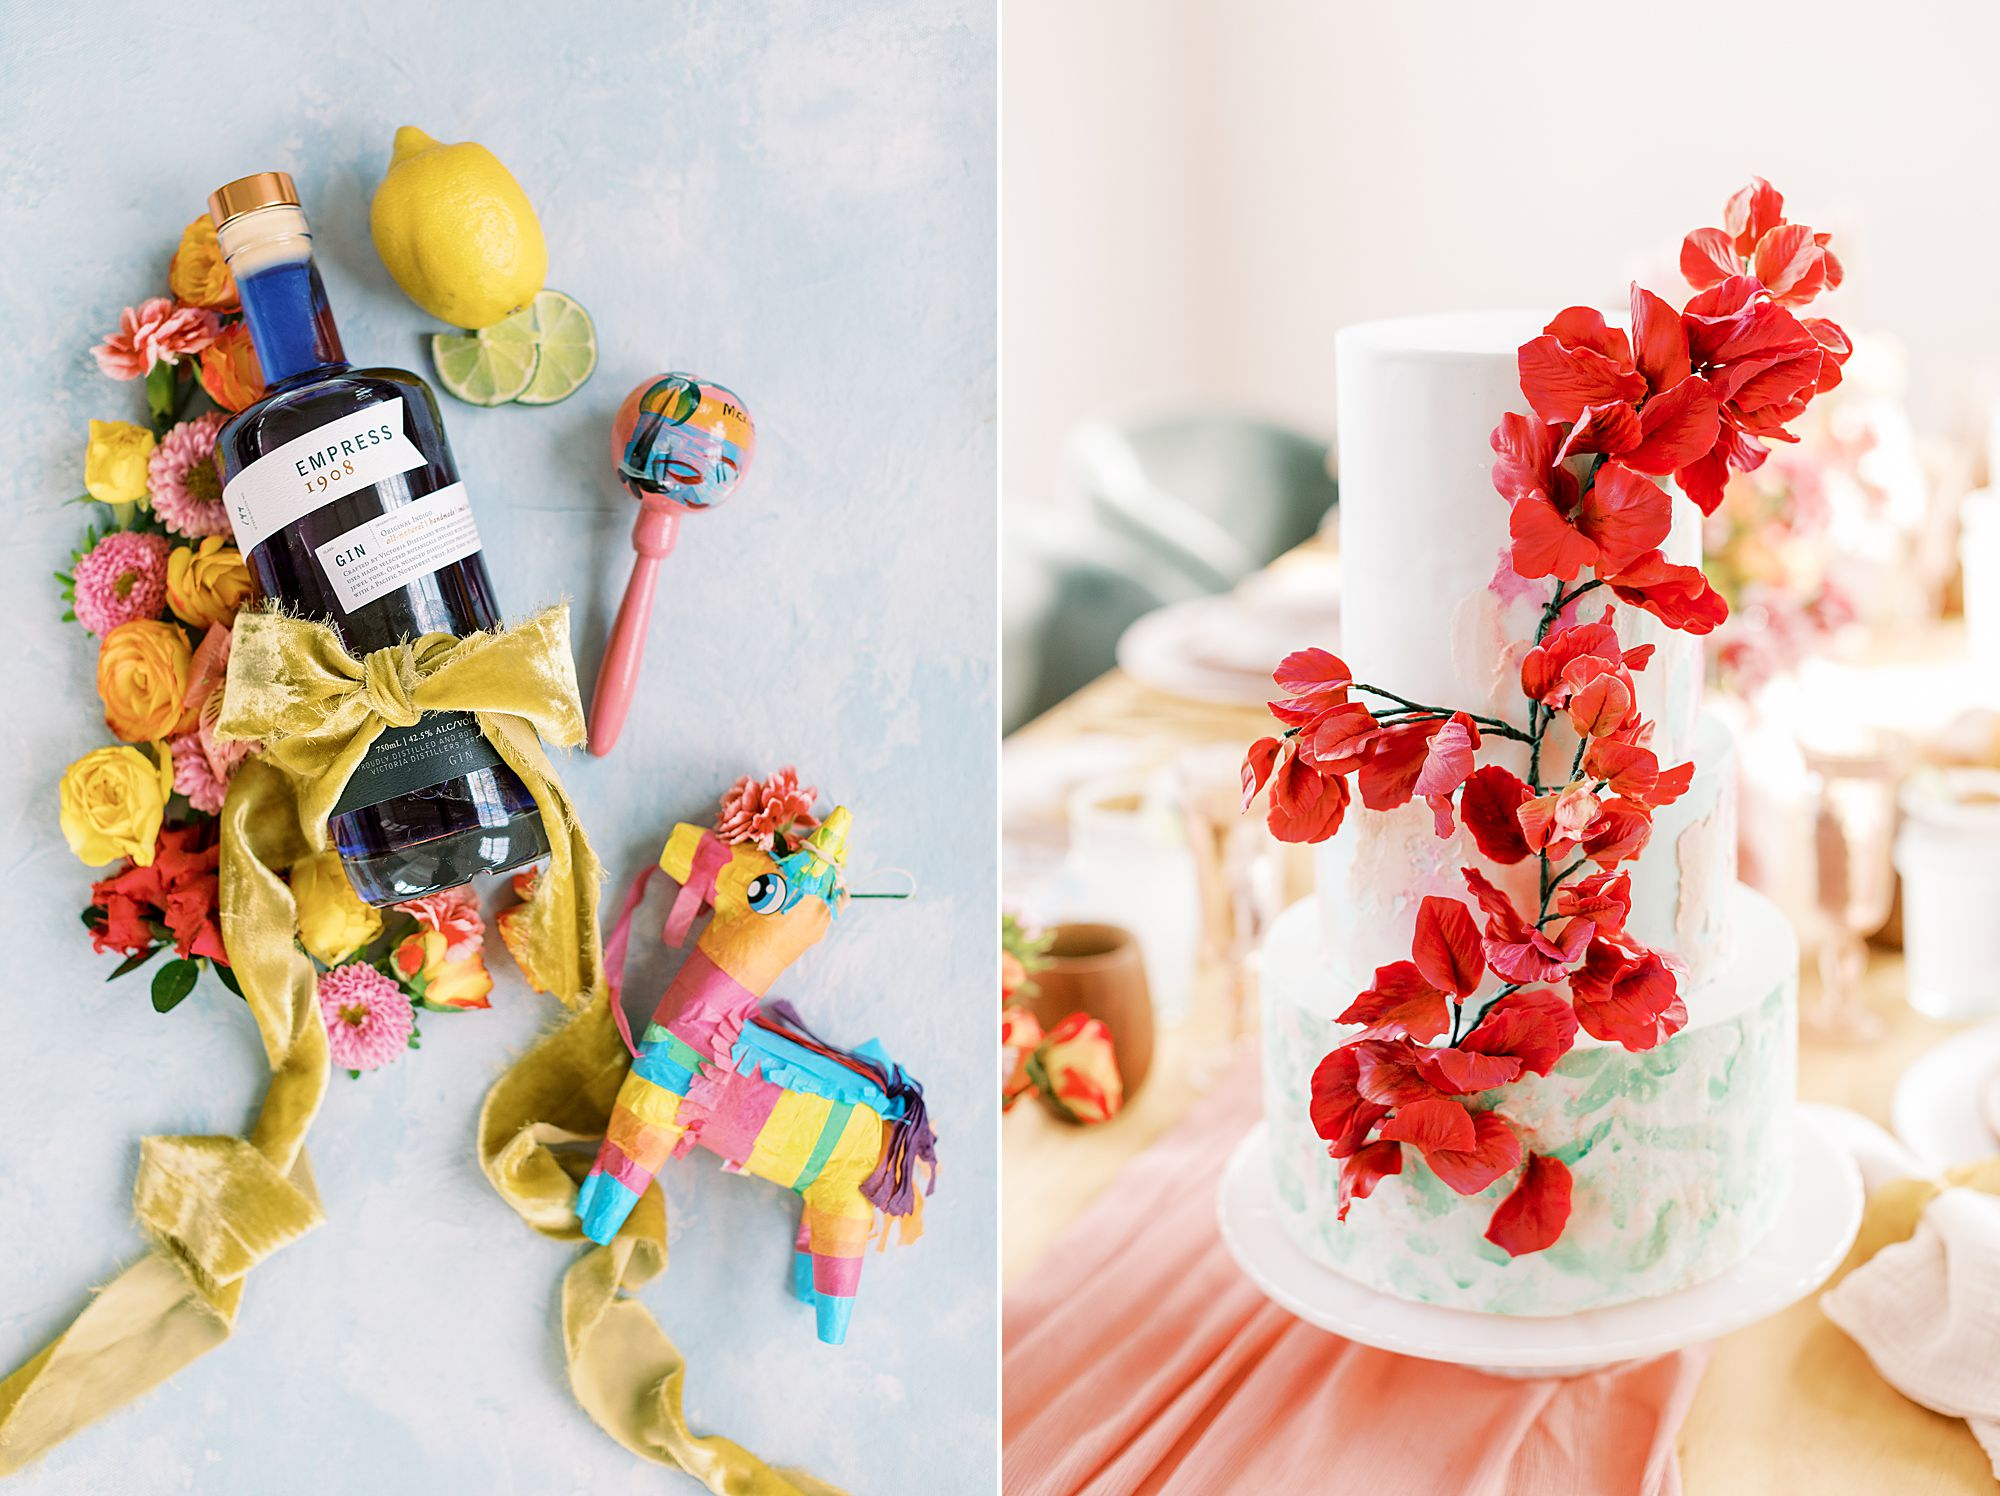 Cinco De Mayo Inspiration for Your FIesta - Party Crush Studio and Ashley Baumgartner_0024.jpg